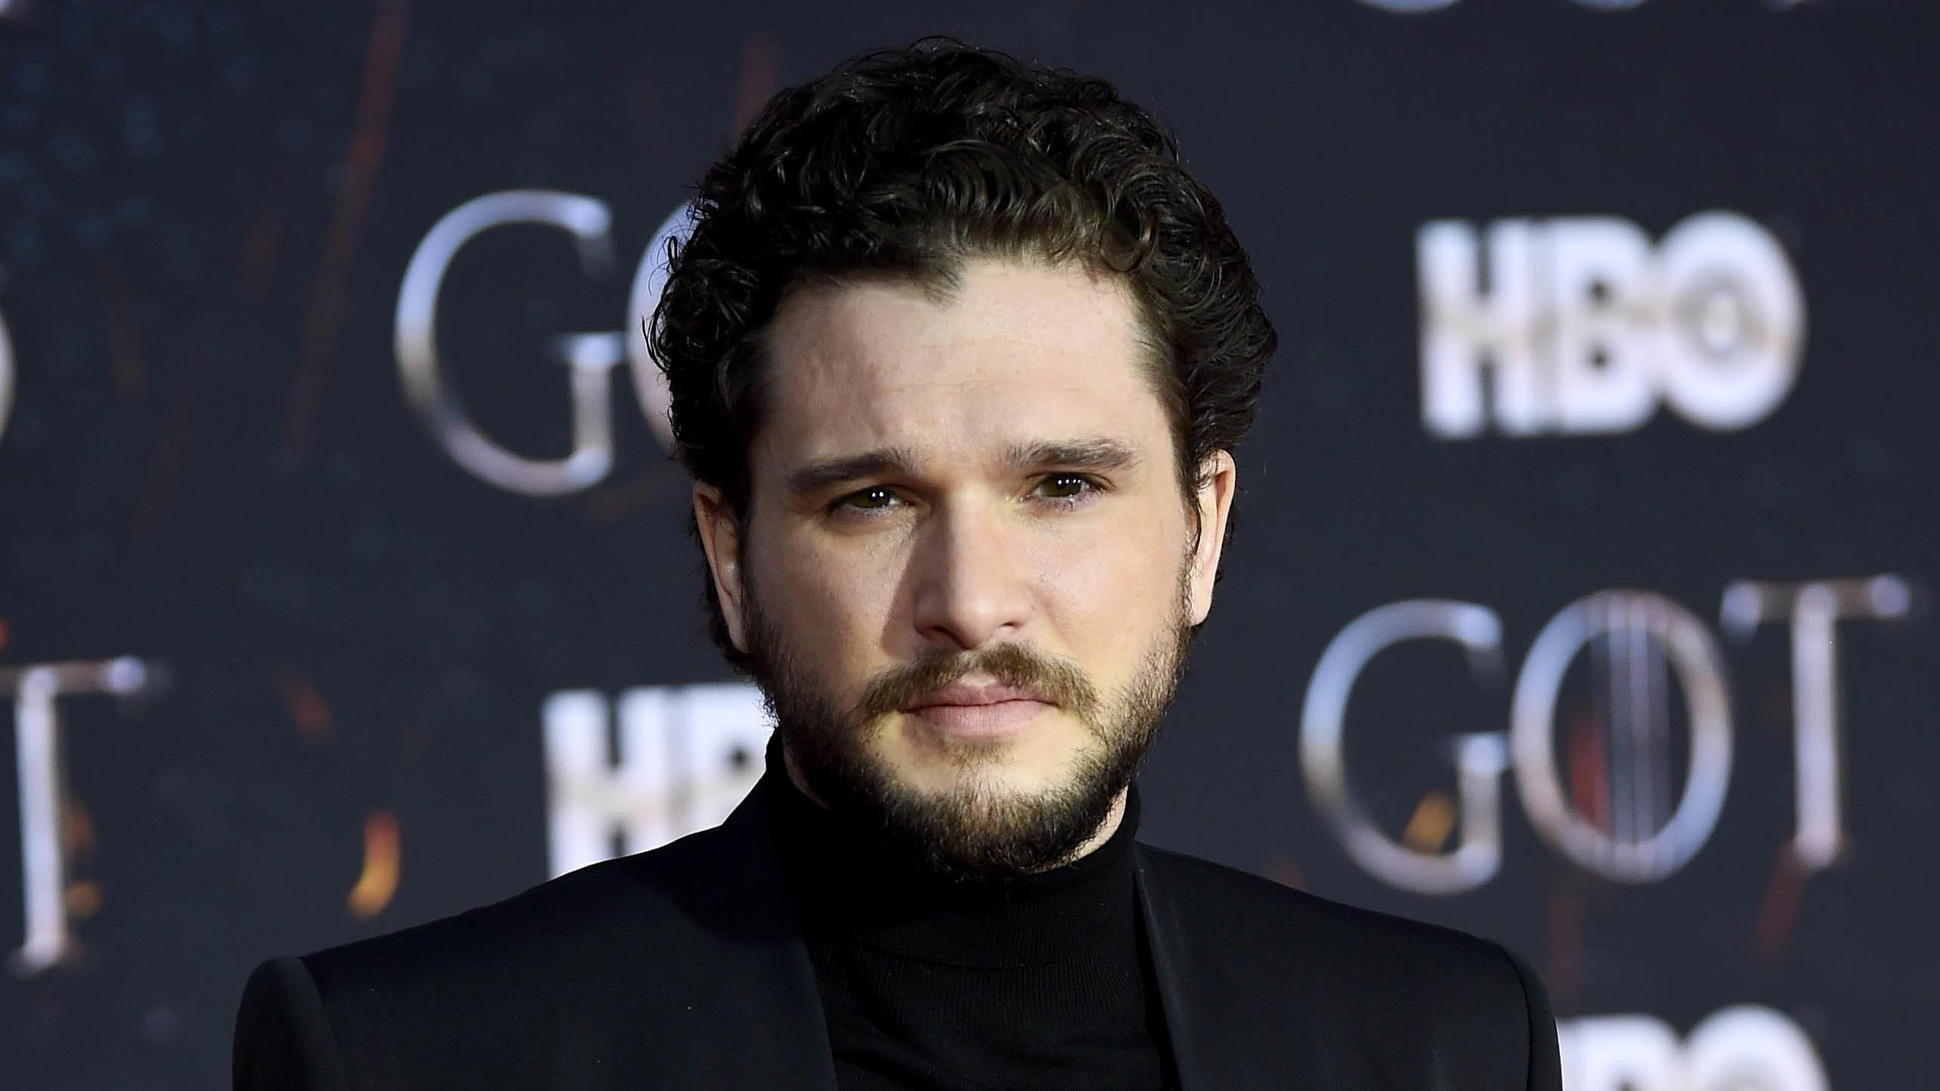 Kit Harington interpretó a Jon Snow